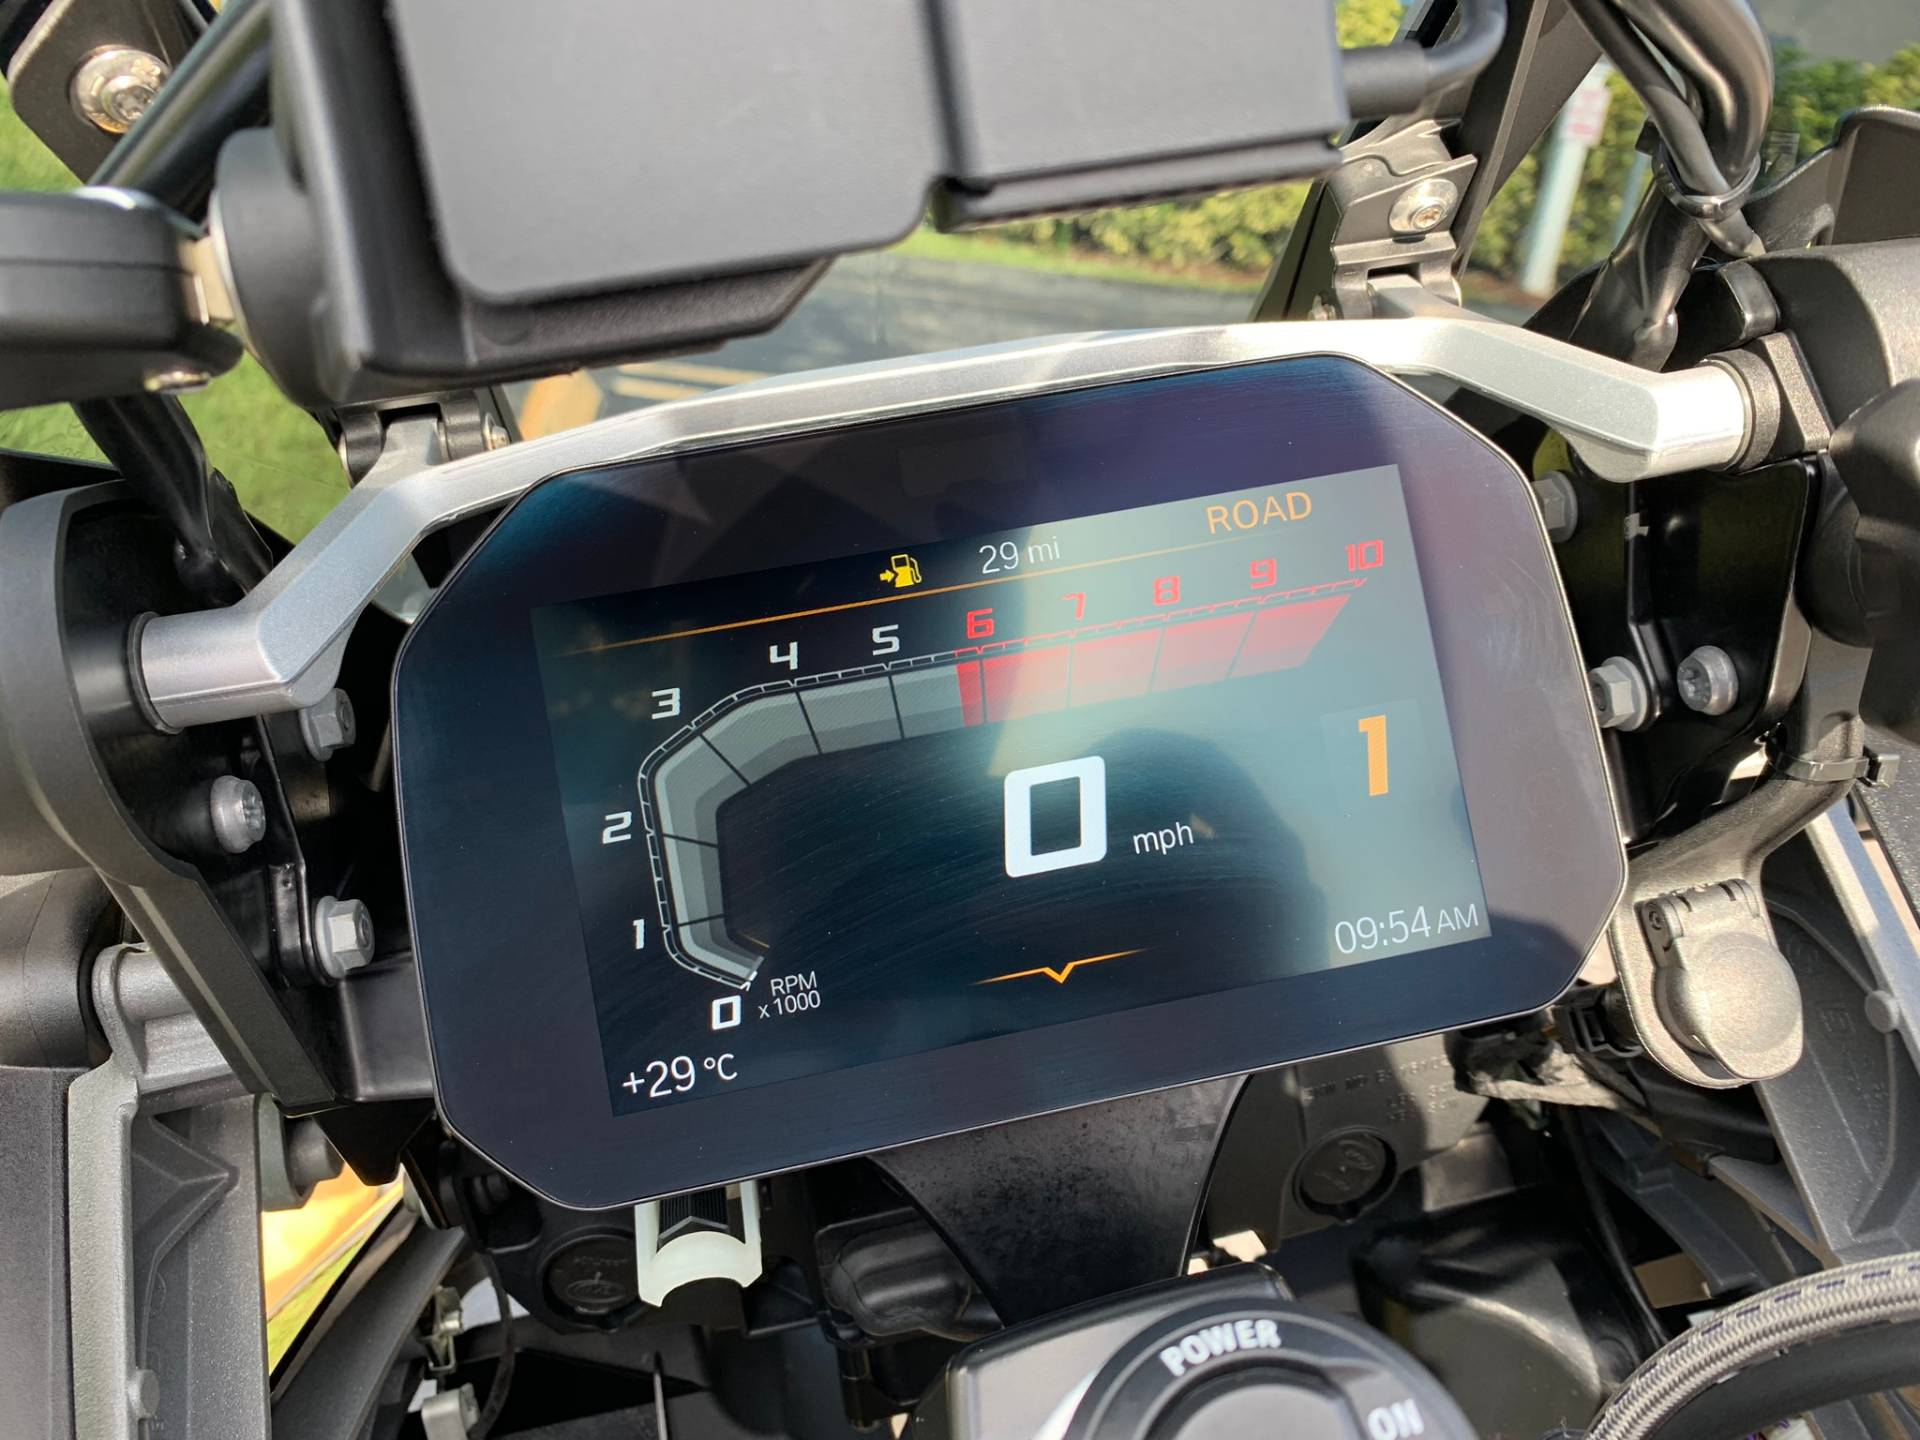 Used 2018 BMW R 1200 GS for sale, BMW R 1200GS for sale, BMW Motorcycle R1200GS, used BMW 1200GS, DUAL, GSA, BMW. BMW Motorcycles of Miami, Motorcycles of Miami, Motorcycles Miami, New Motorcycles, Used Motorcycles, pre-owned. #BMWMotorcyclesOfMiami #MotorcyclesOfMiami. - Photo 18